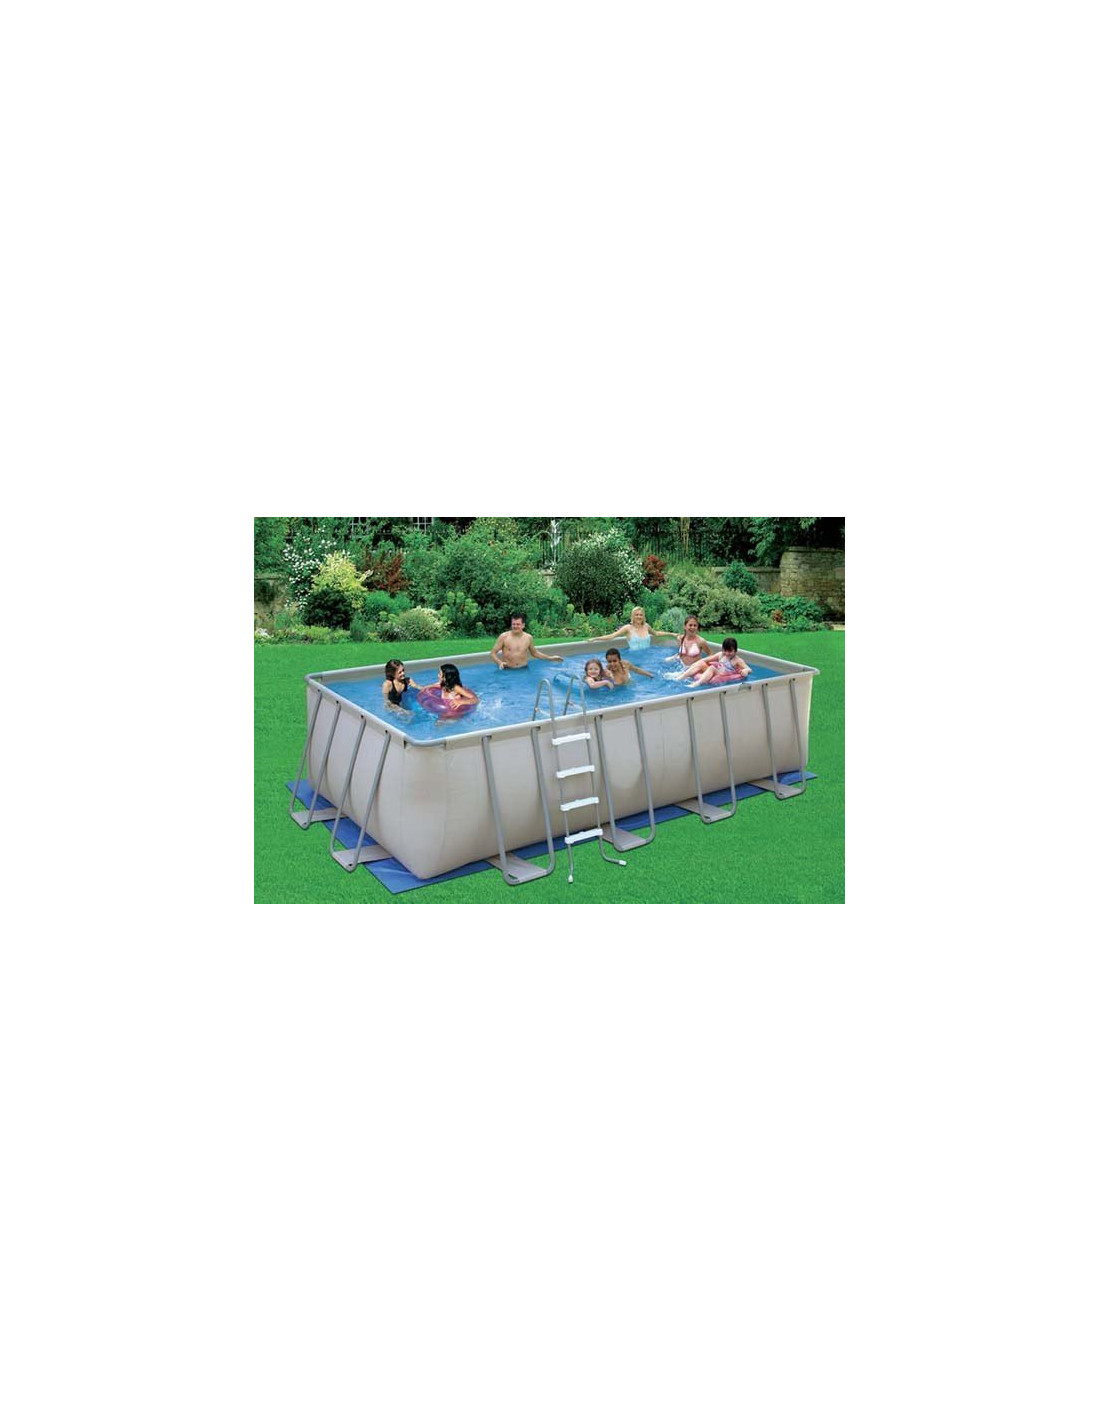 Piscine tubulaire rectangulaire garden leisure 5 48 x 2 for Skimmer piscine tubulaire hors sol